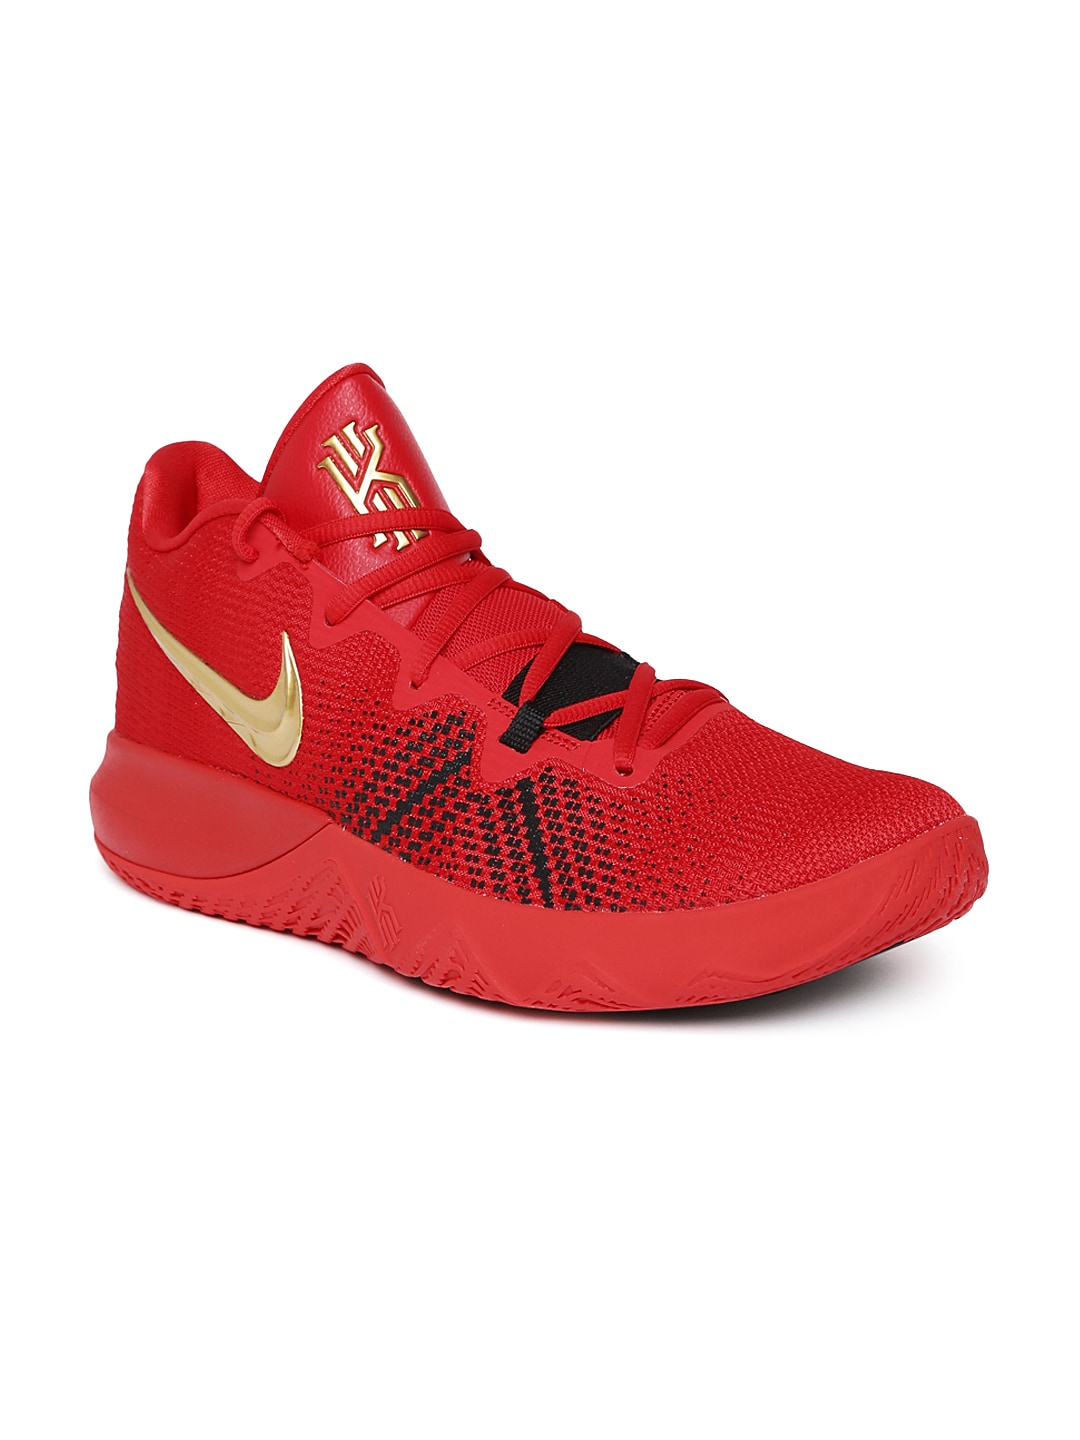 huge selection of 1bc0b 32383 Nike Red Shoes - Buy Nike Red Shoes Online in India